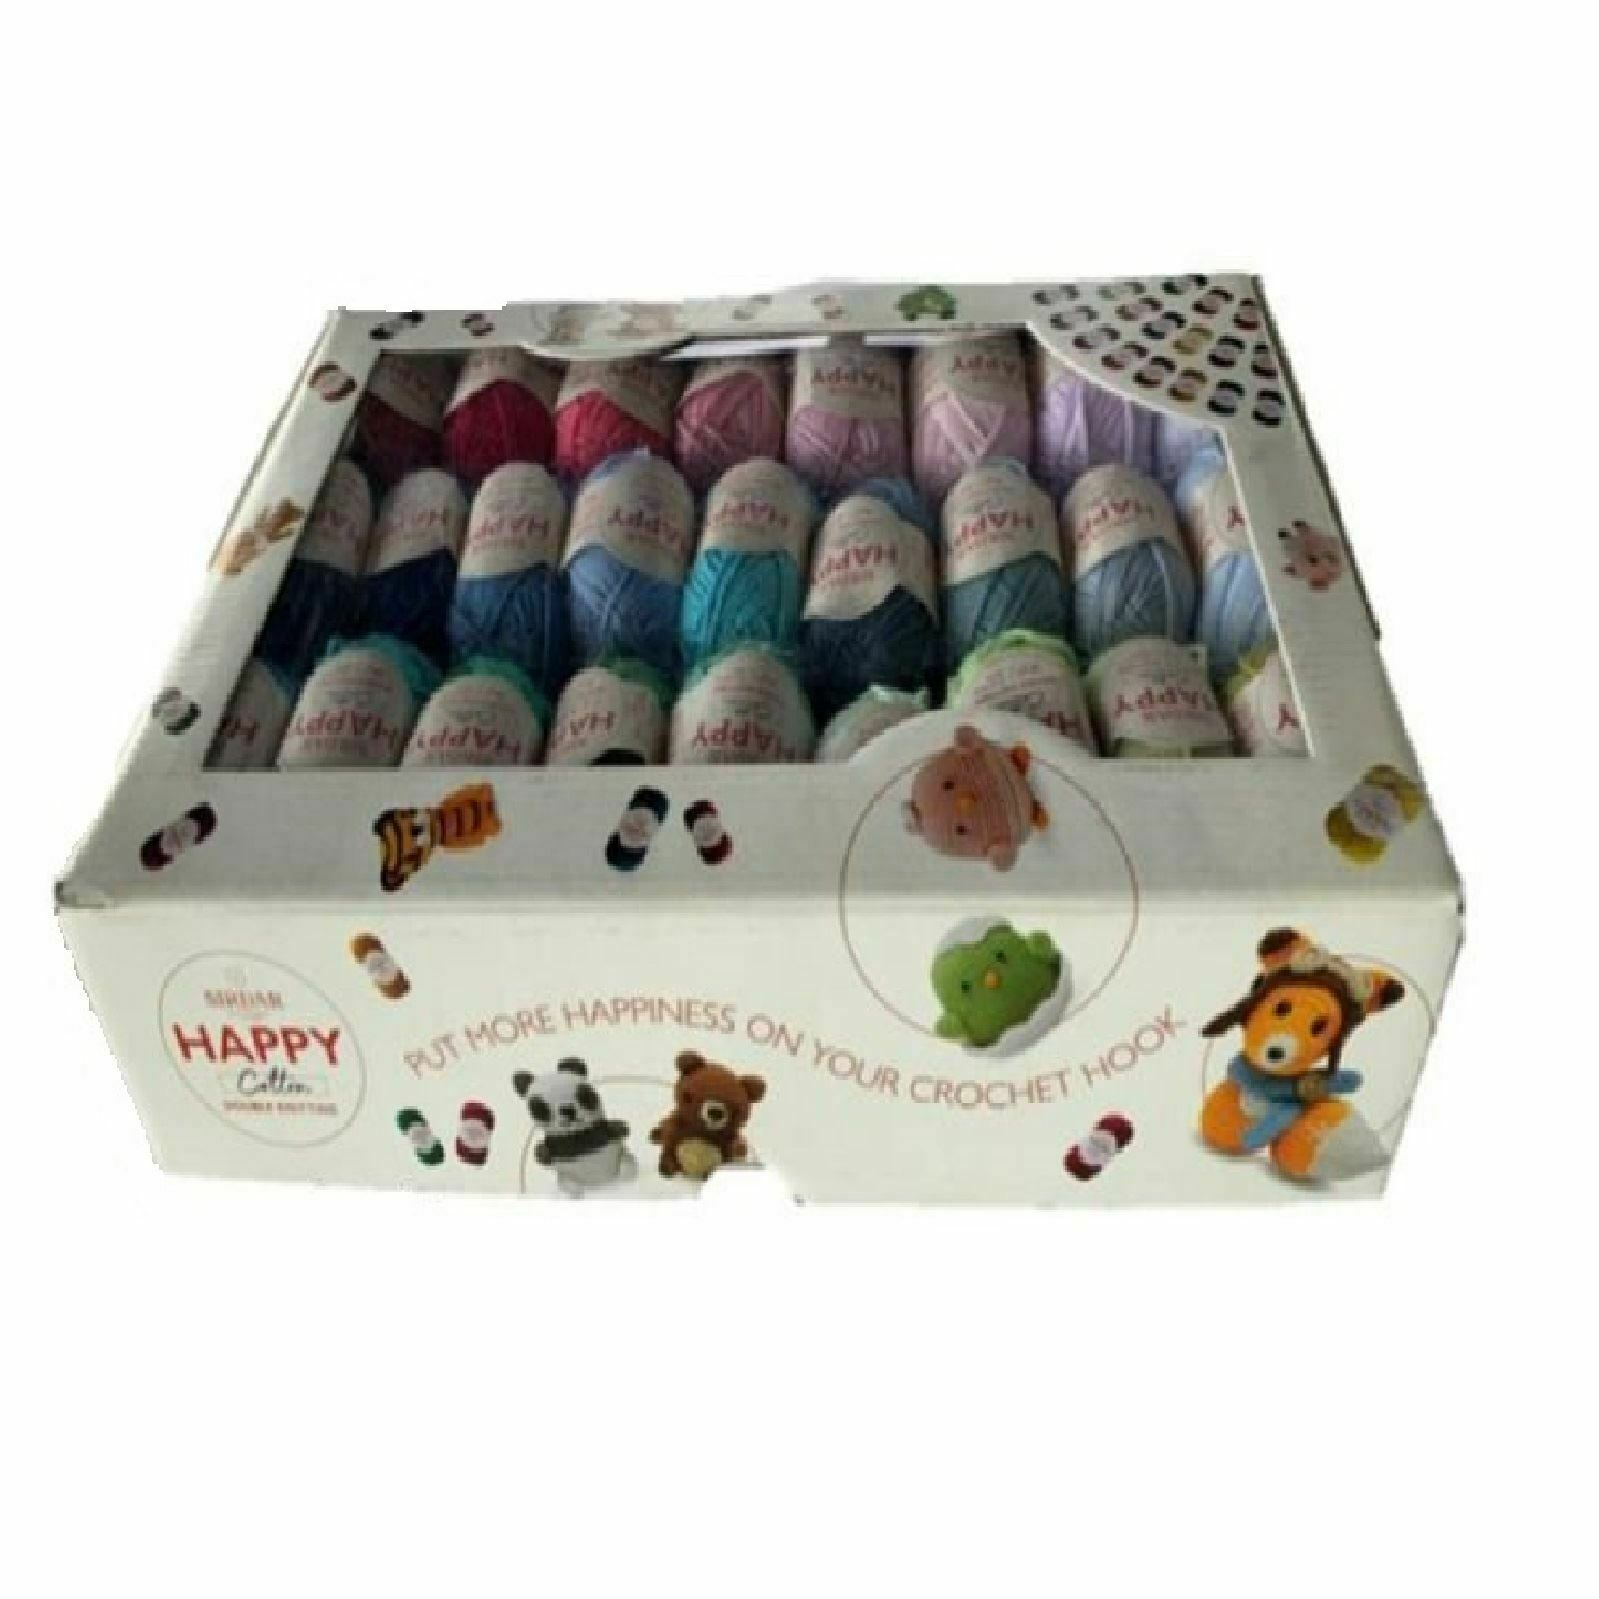 Sirdar Happy Cotton Gift Box 50 shades £42.99  RRP 49.99 OUR PRICE